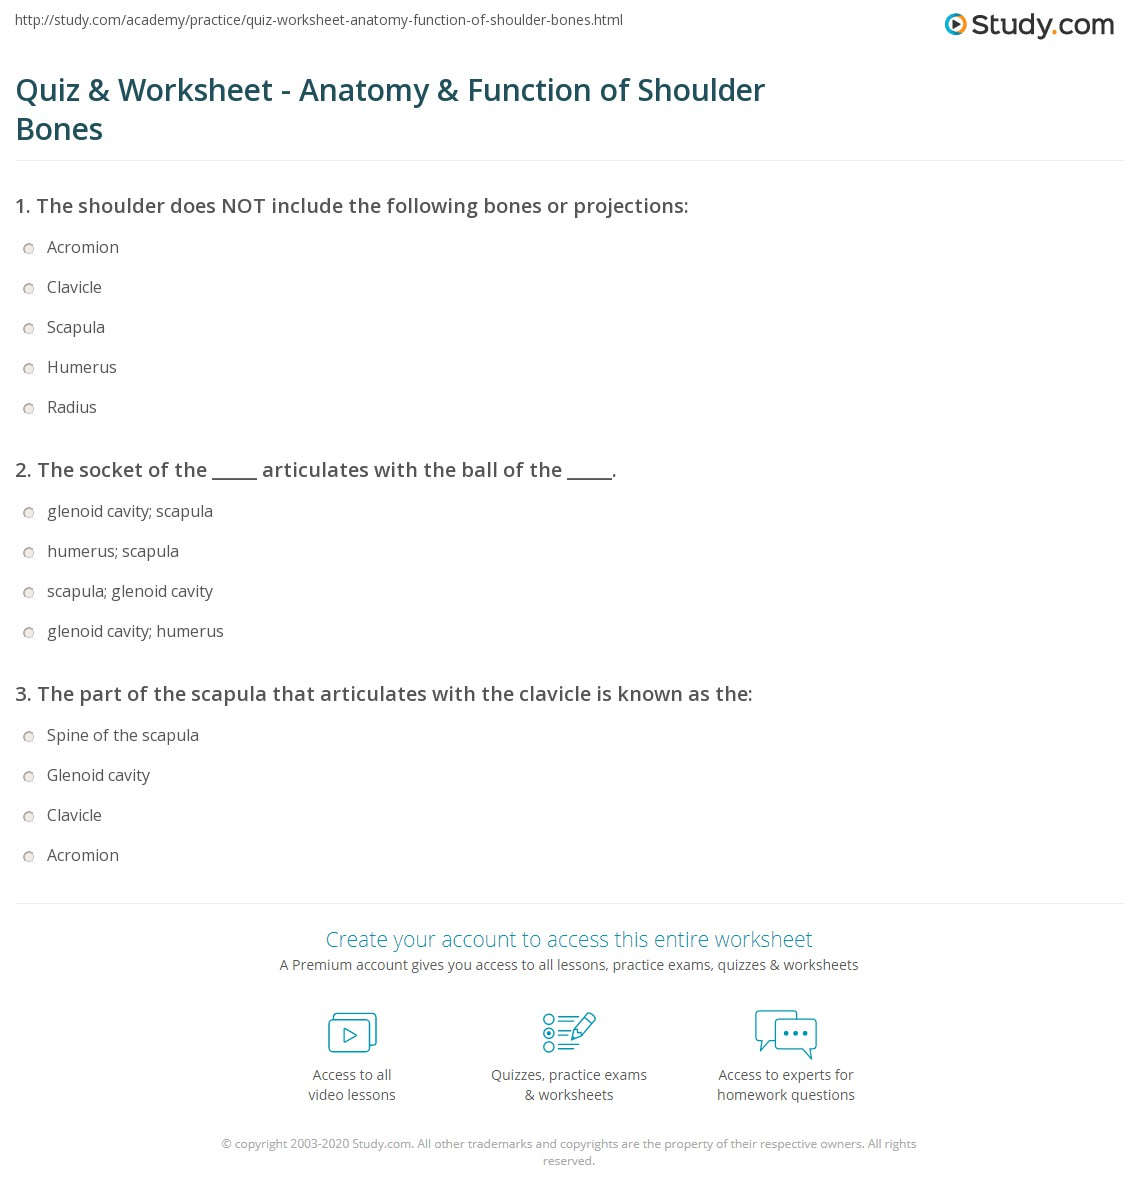 Quiz Worksheet Anatomy Function Of Shoulder Bones Study